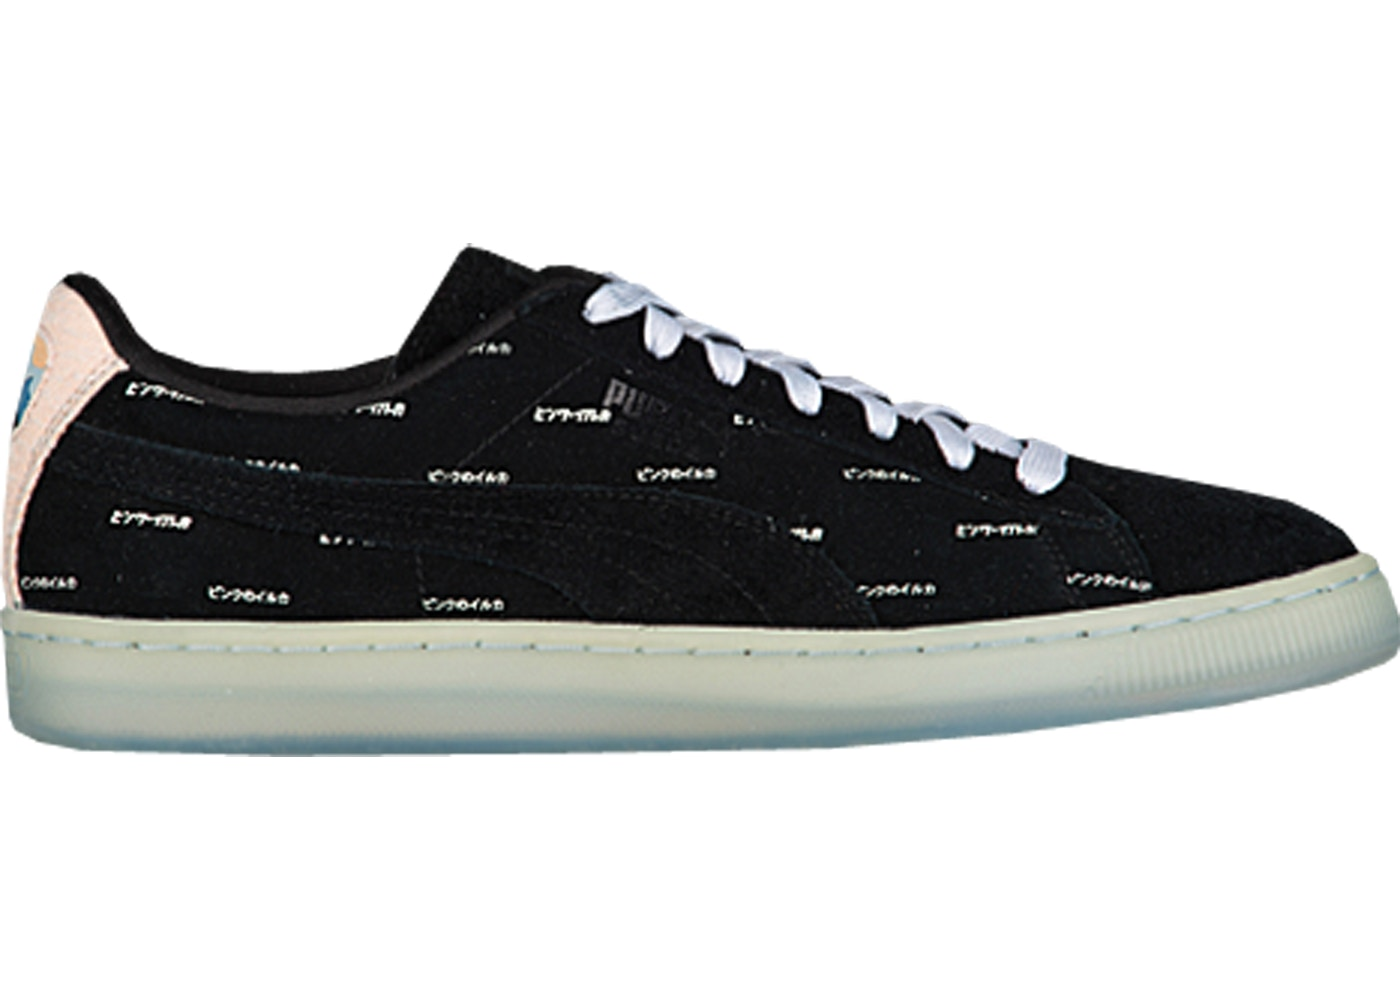 outlet store 13b13 bbe9c Puma Suede Pink Dolphin Black